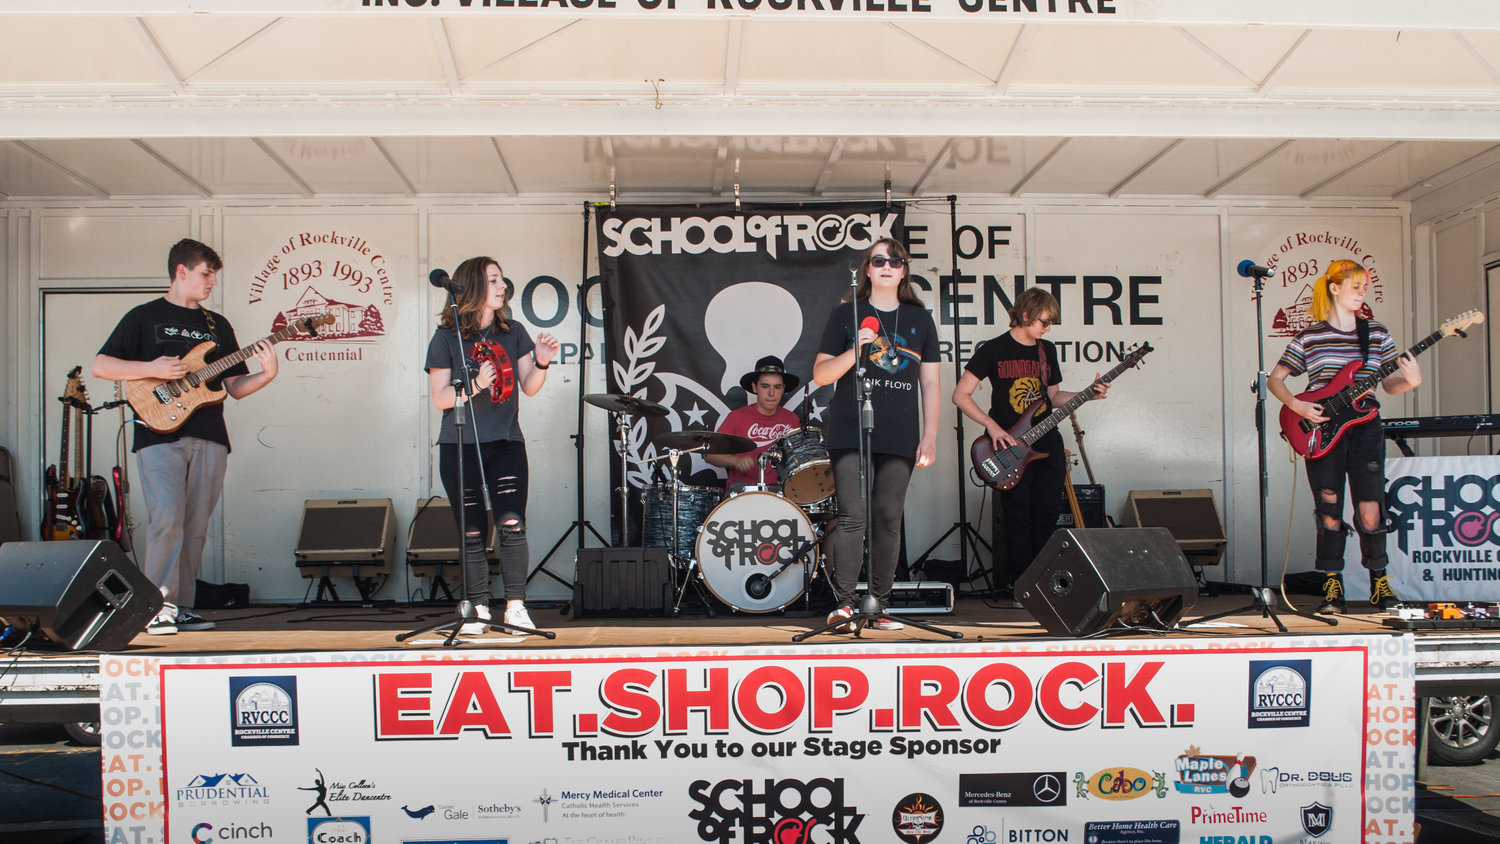 Students from Huntington School of Rock entertain their crowd with awesome rock songs for Eat. Shop. Rock. in RVC on Sept. 22nd.